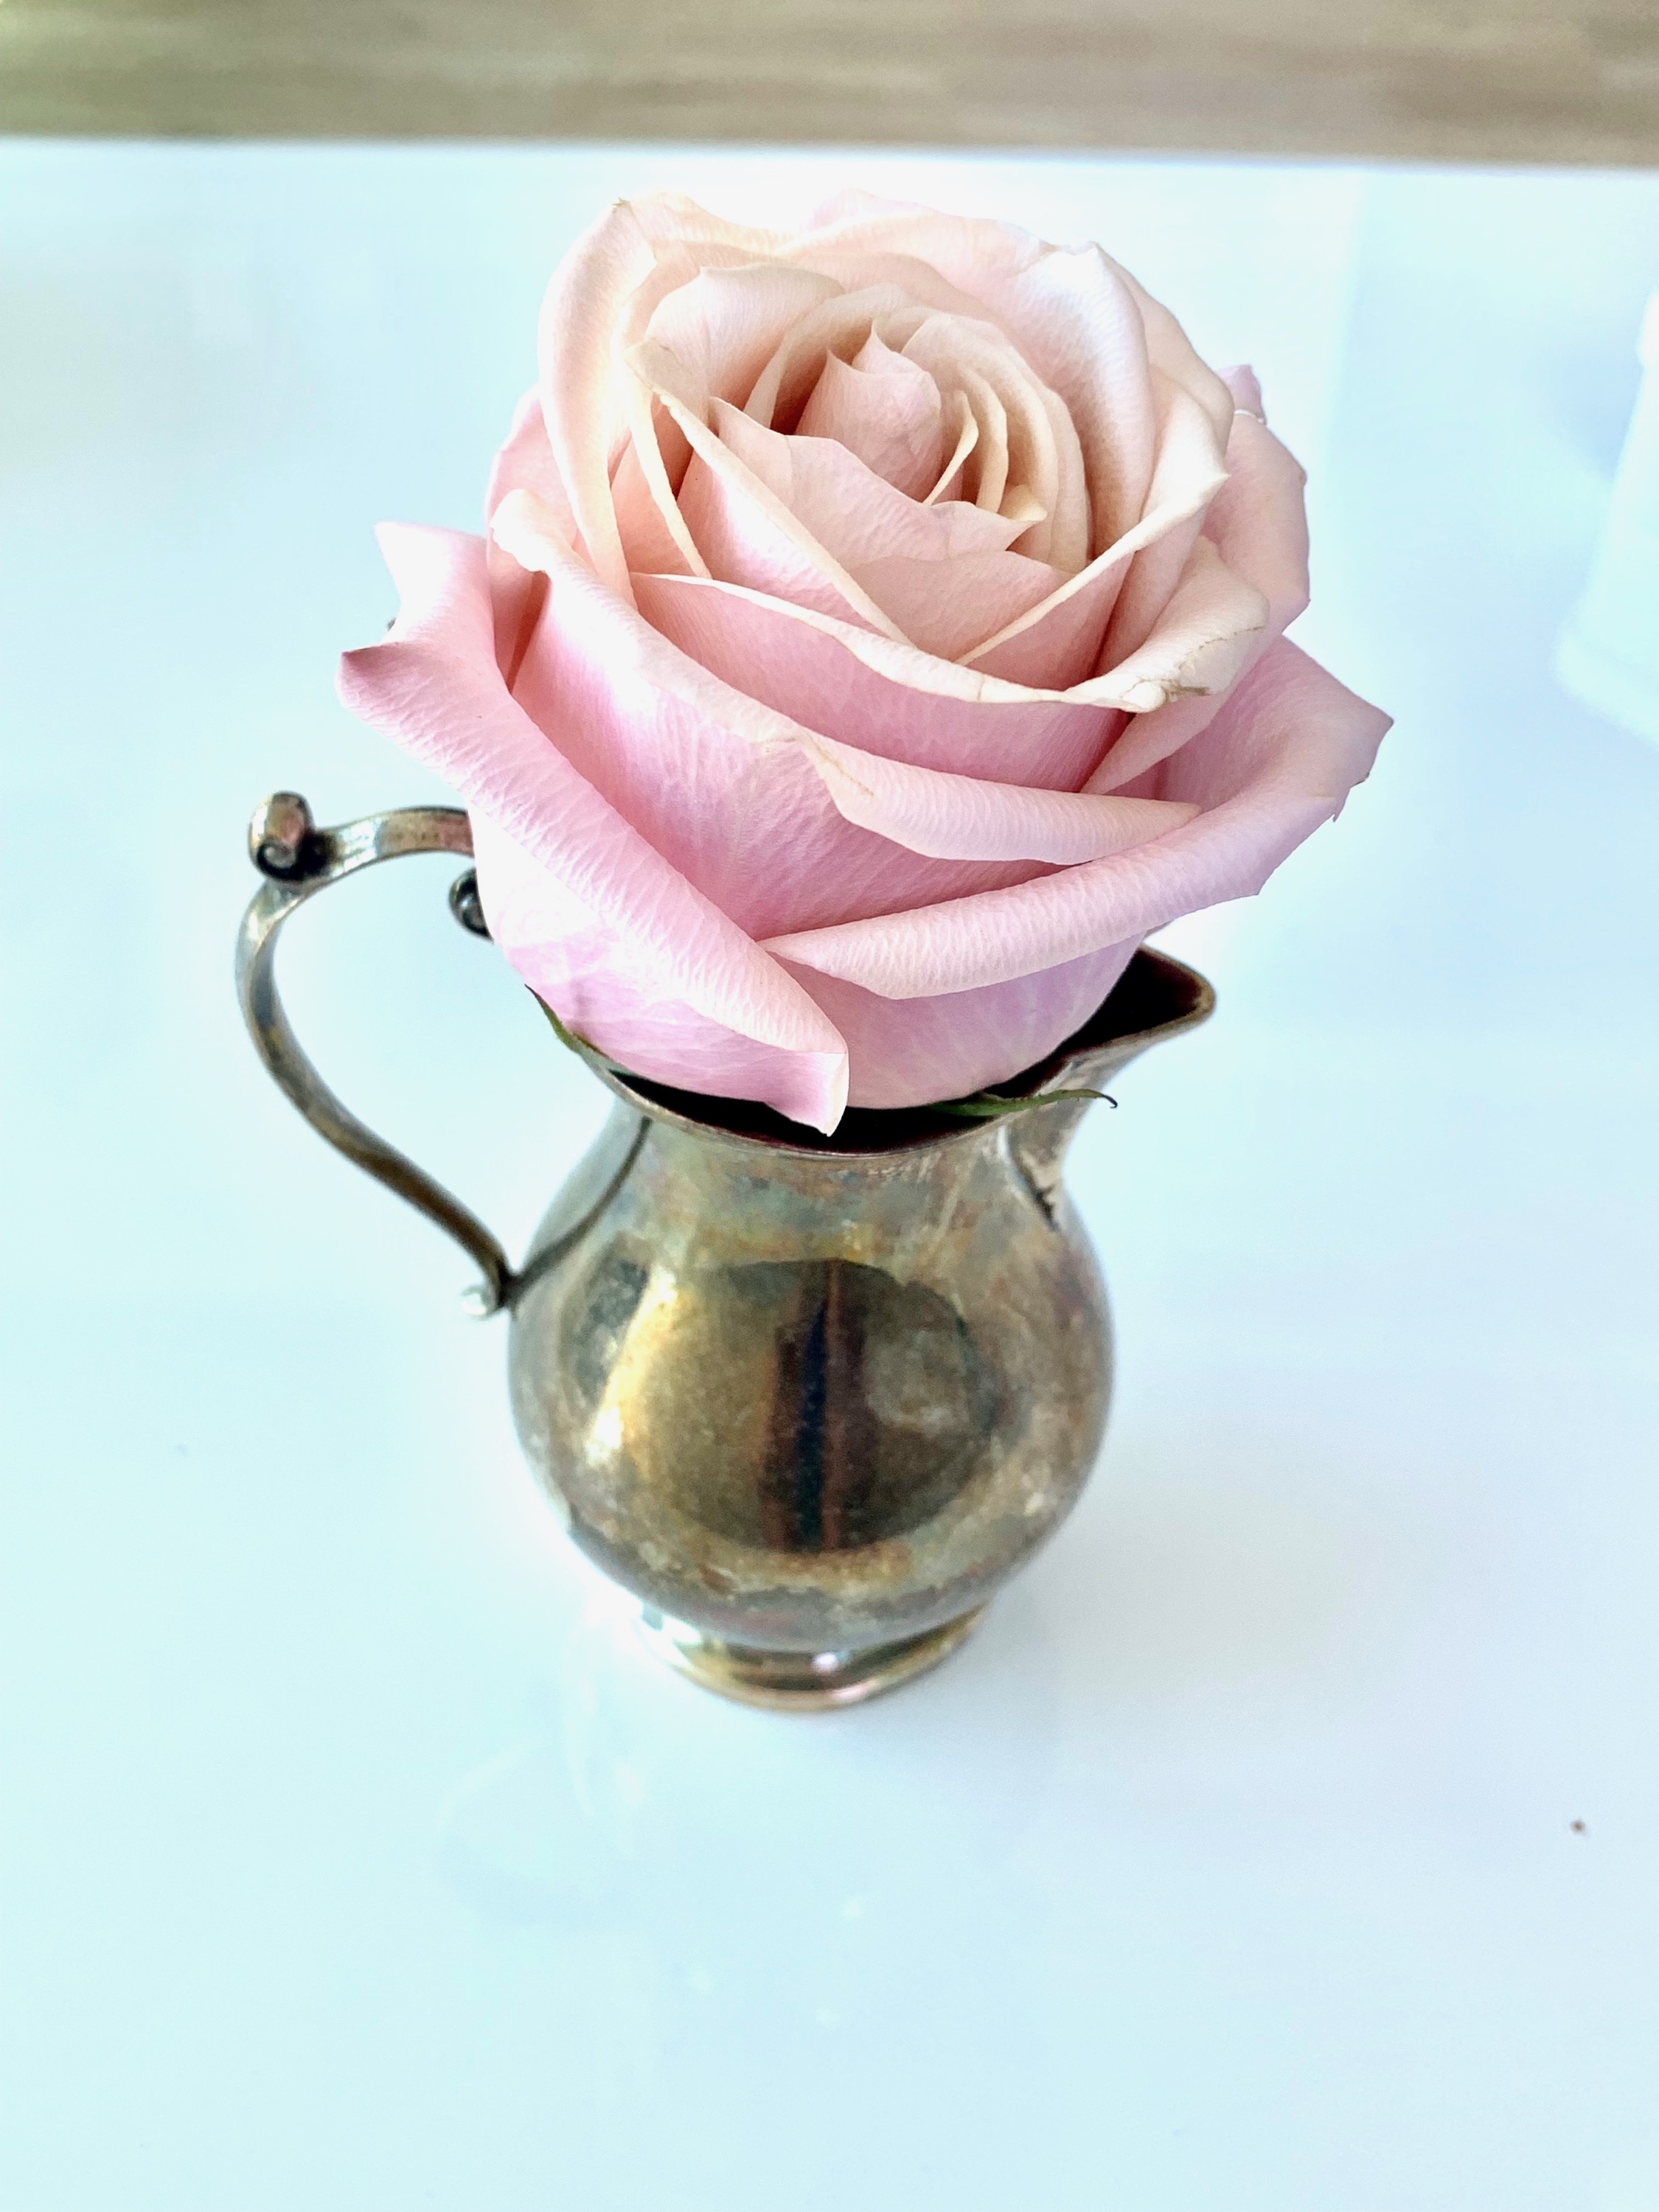 Tarnished silver creamer pitcher dually purposed as a tiny vase, made much prettier with a fresh-cut pink rose… totally imperfect but also super cute and elegant in its own way!